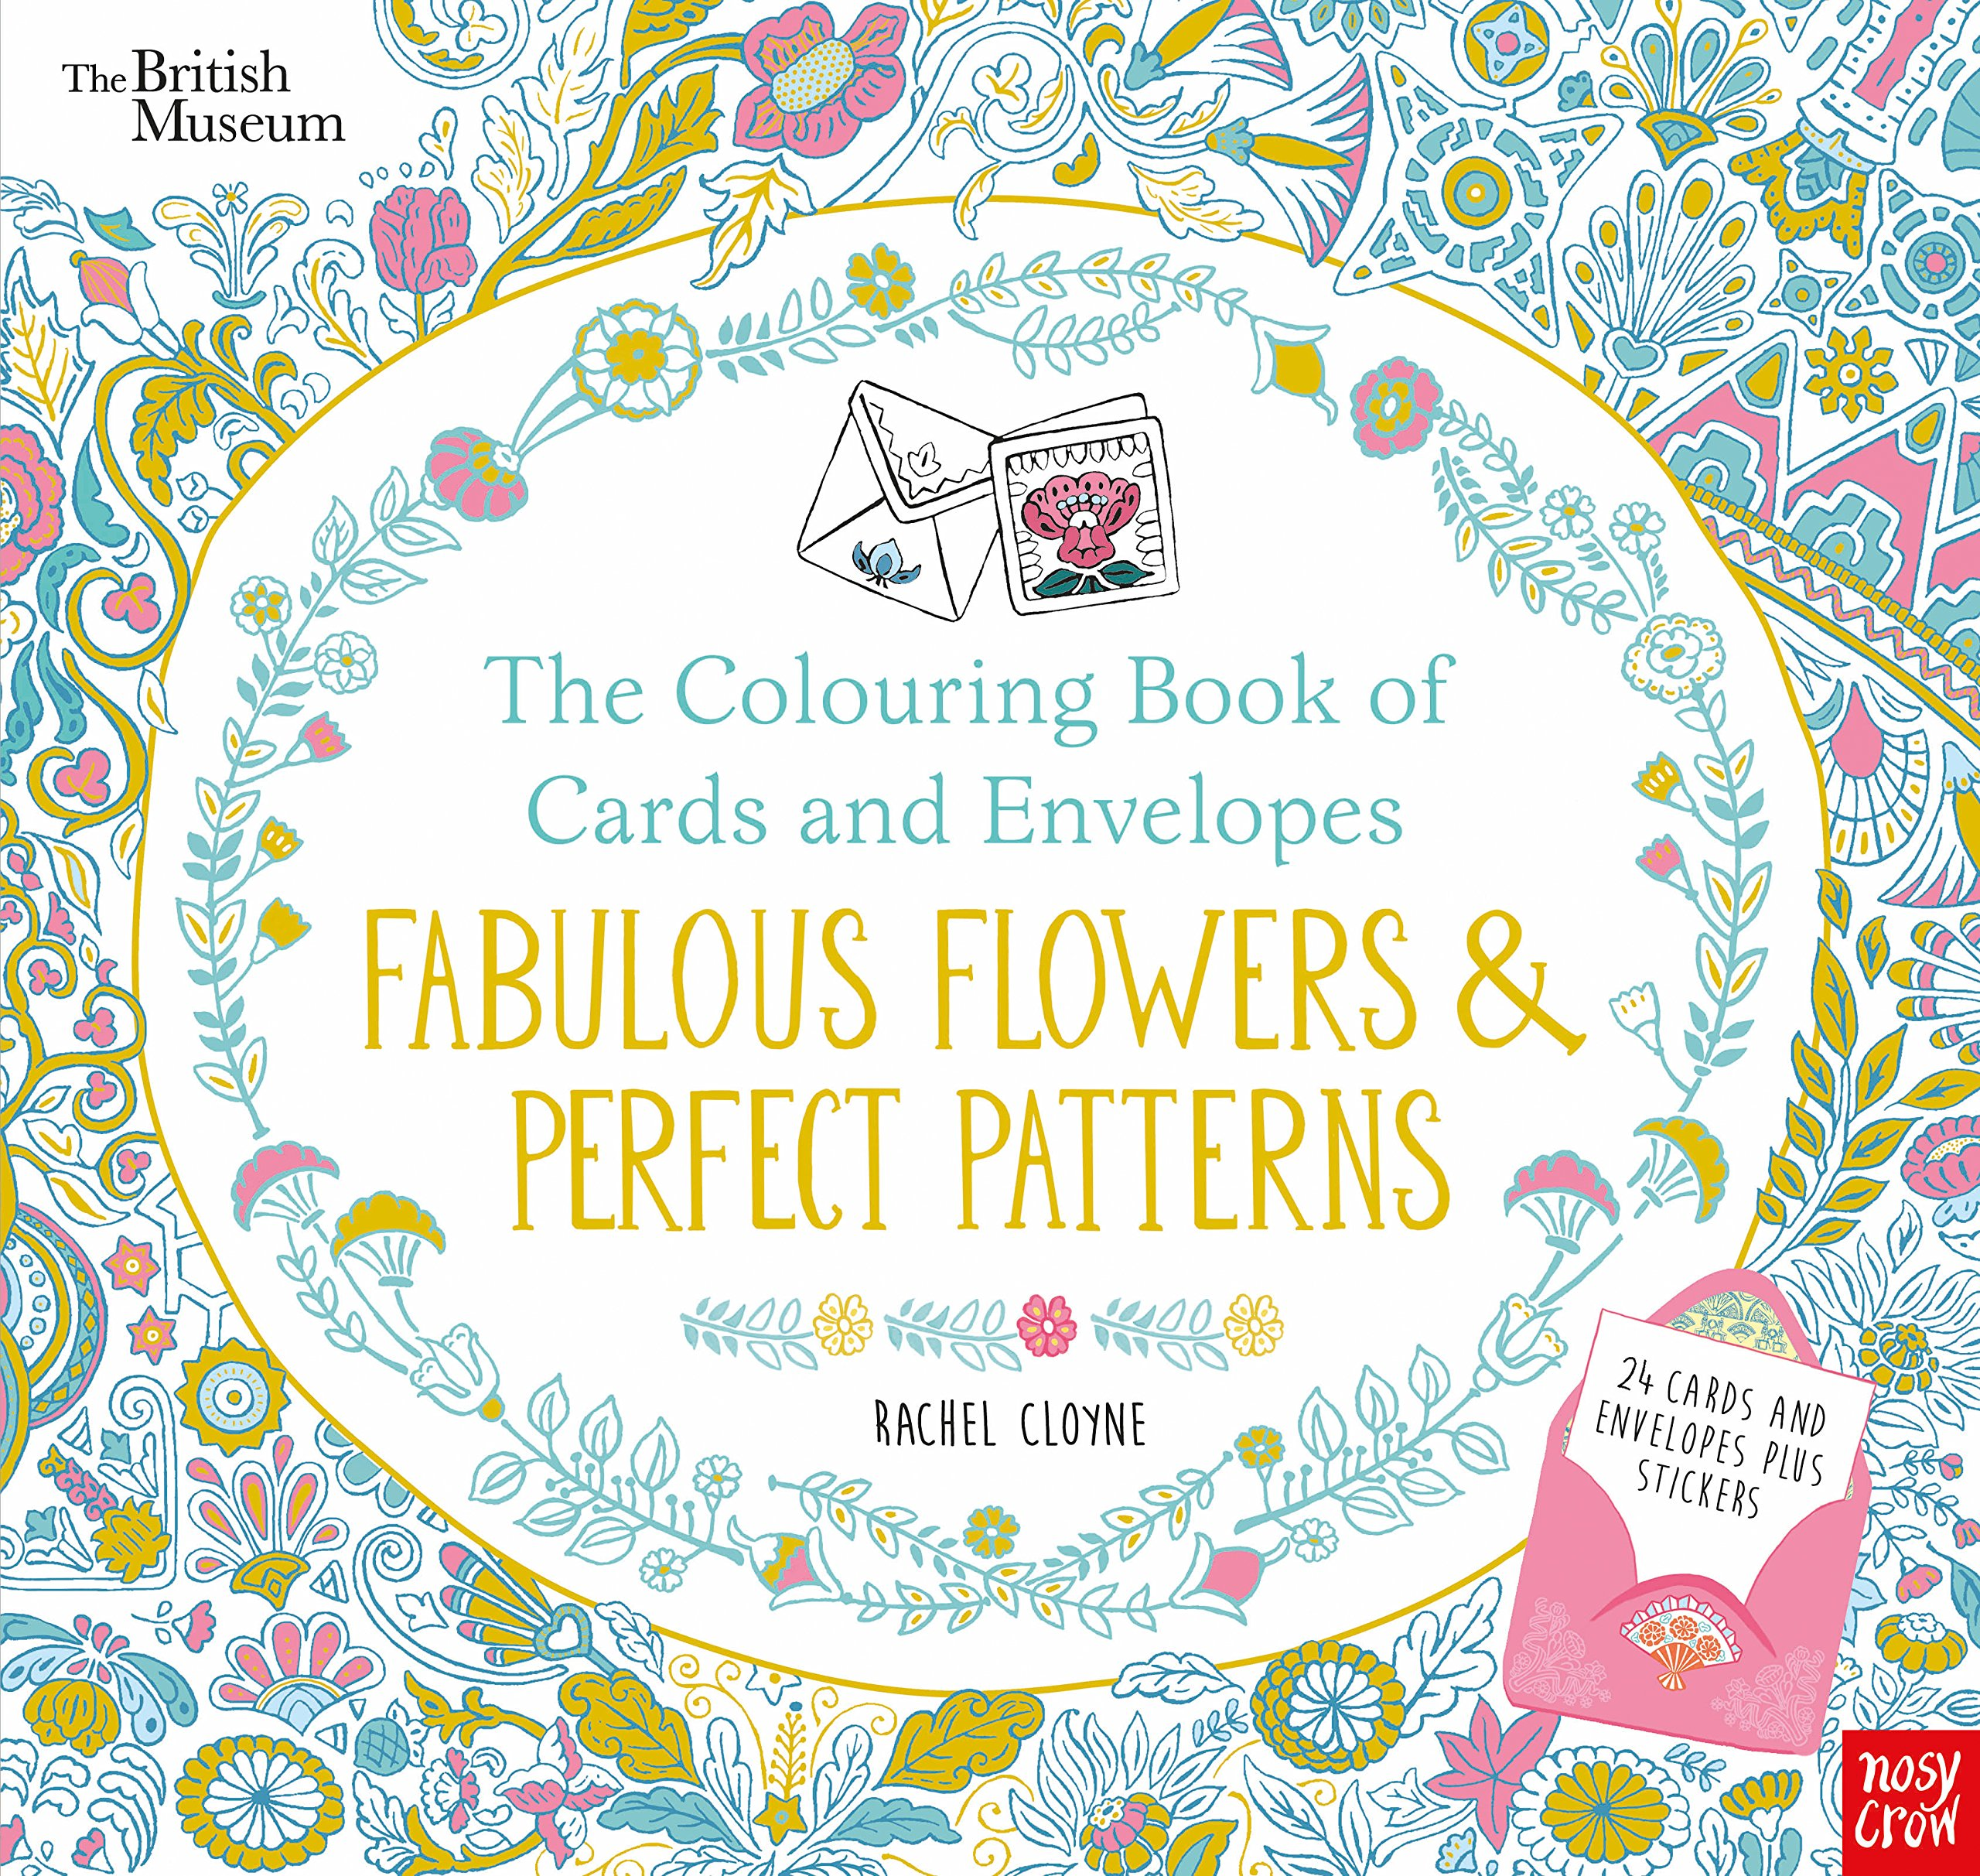 British Museum The Colouring Book Of Cards And Envelopes Fabulous Flowers Perfect Patterns Books Rachel Cloyne